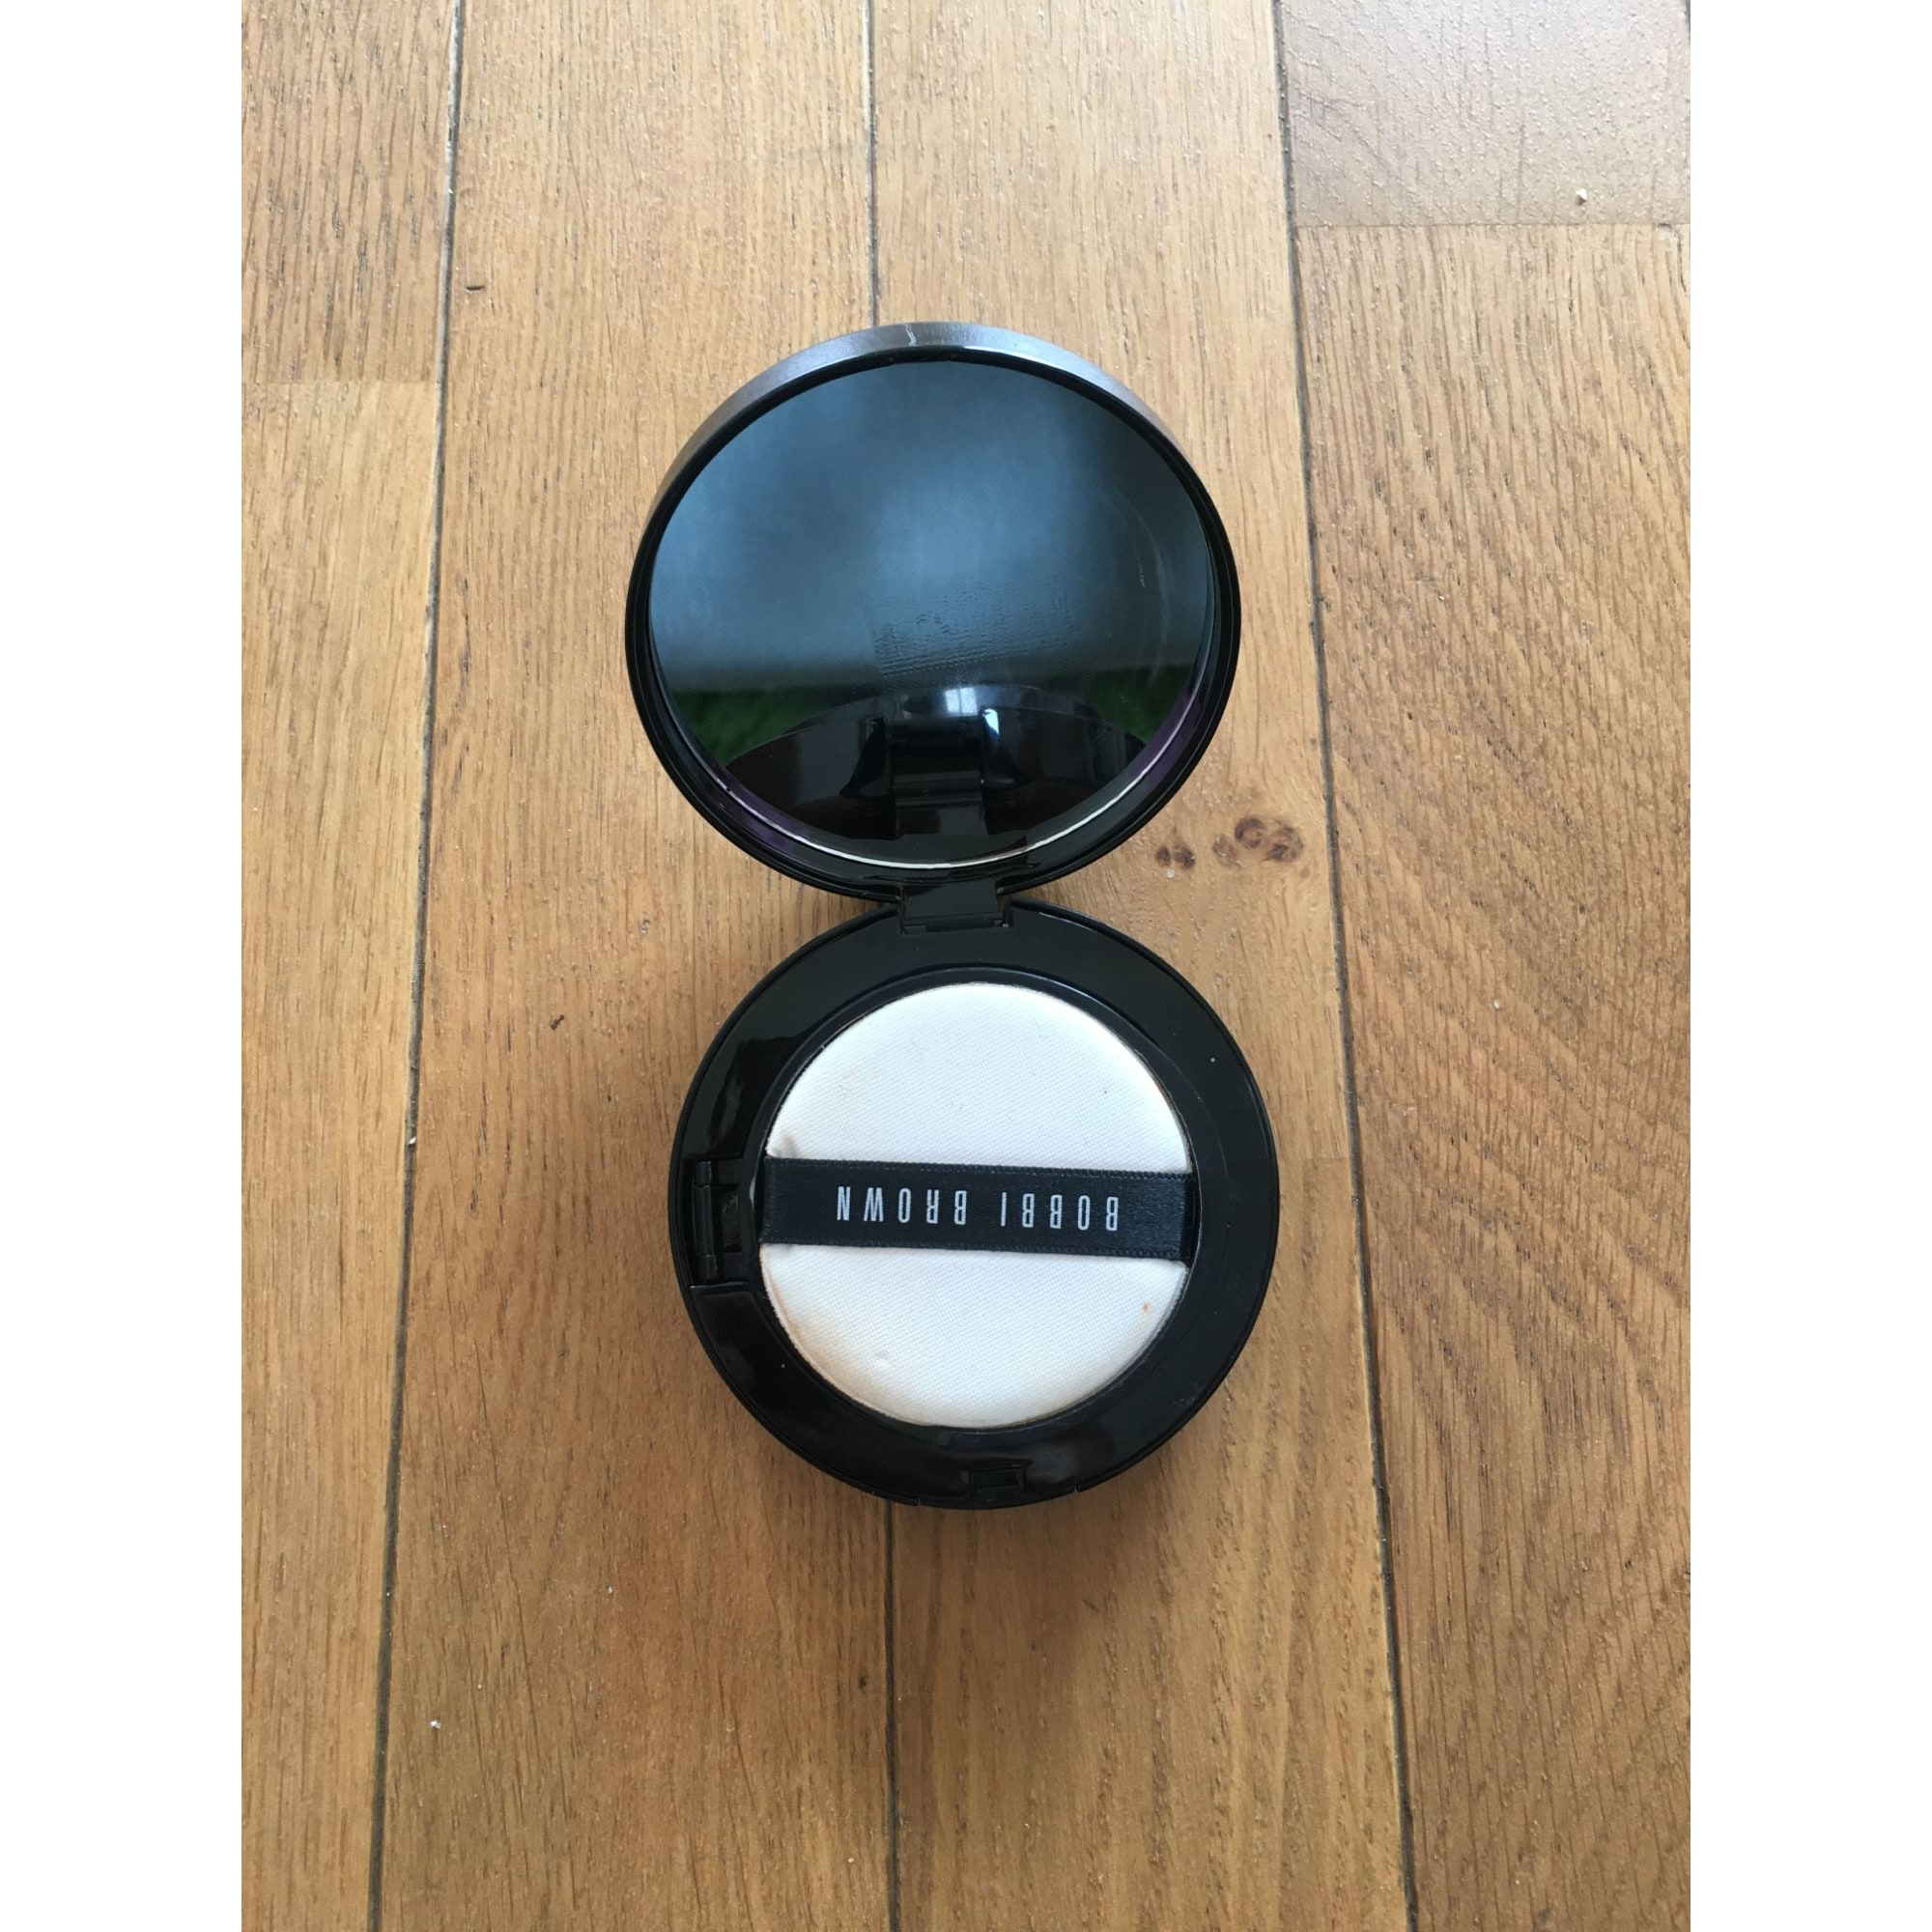 Fond de teint BOBBI BROWN Light to medium